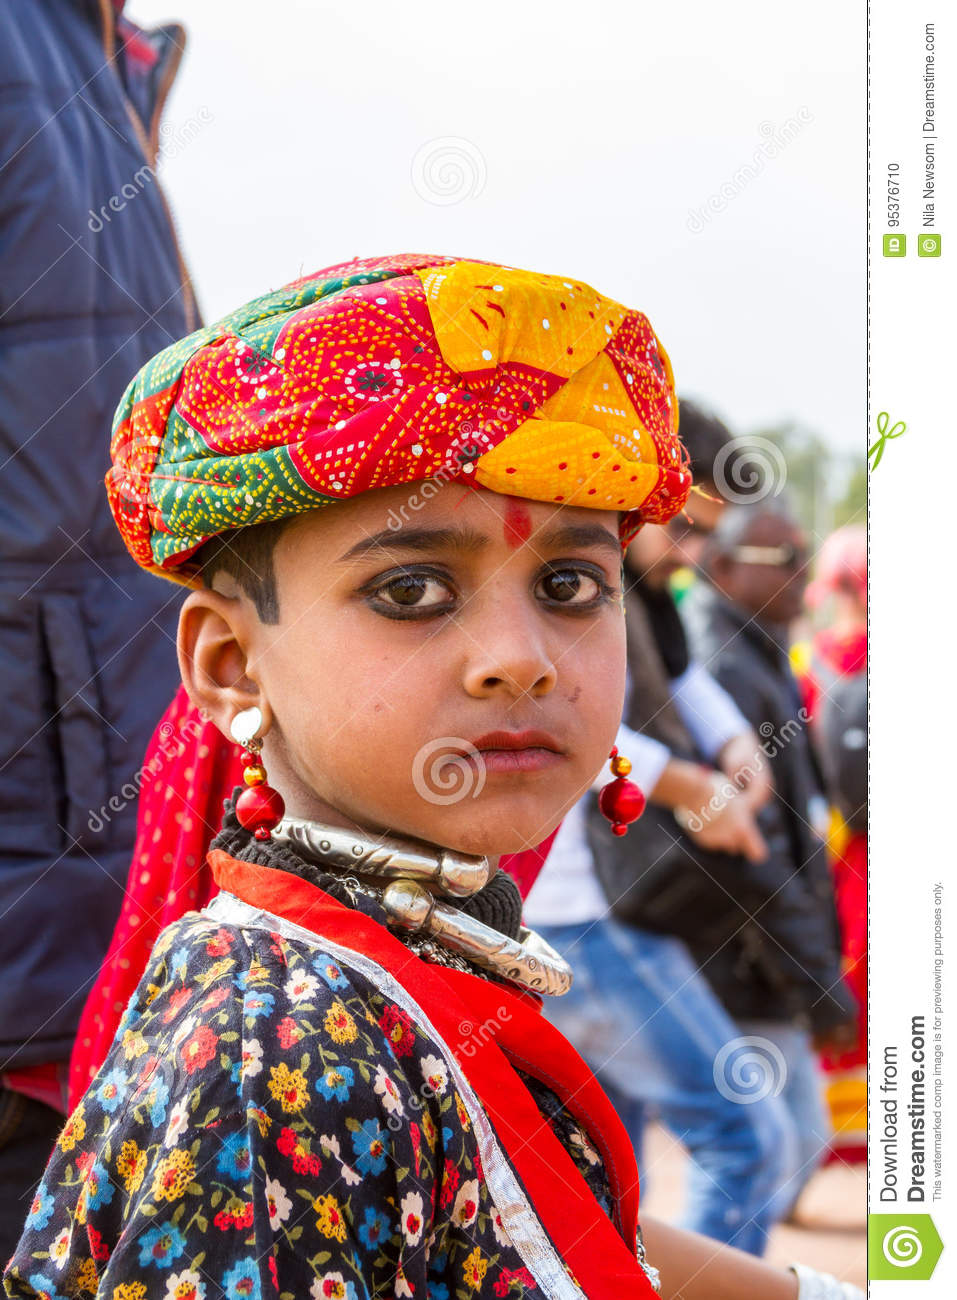 86c125348 Bikaner, India, 14th January 2017 - A young Rajasthani boy dressed in traditional  attire at the Bikaner Camel Mela in Rajastan, India.